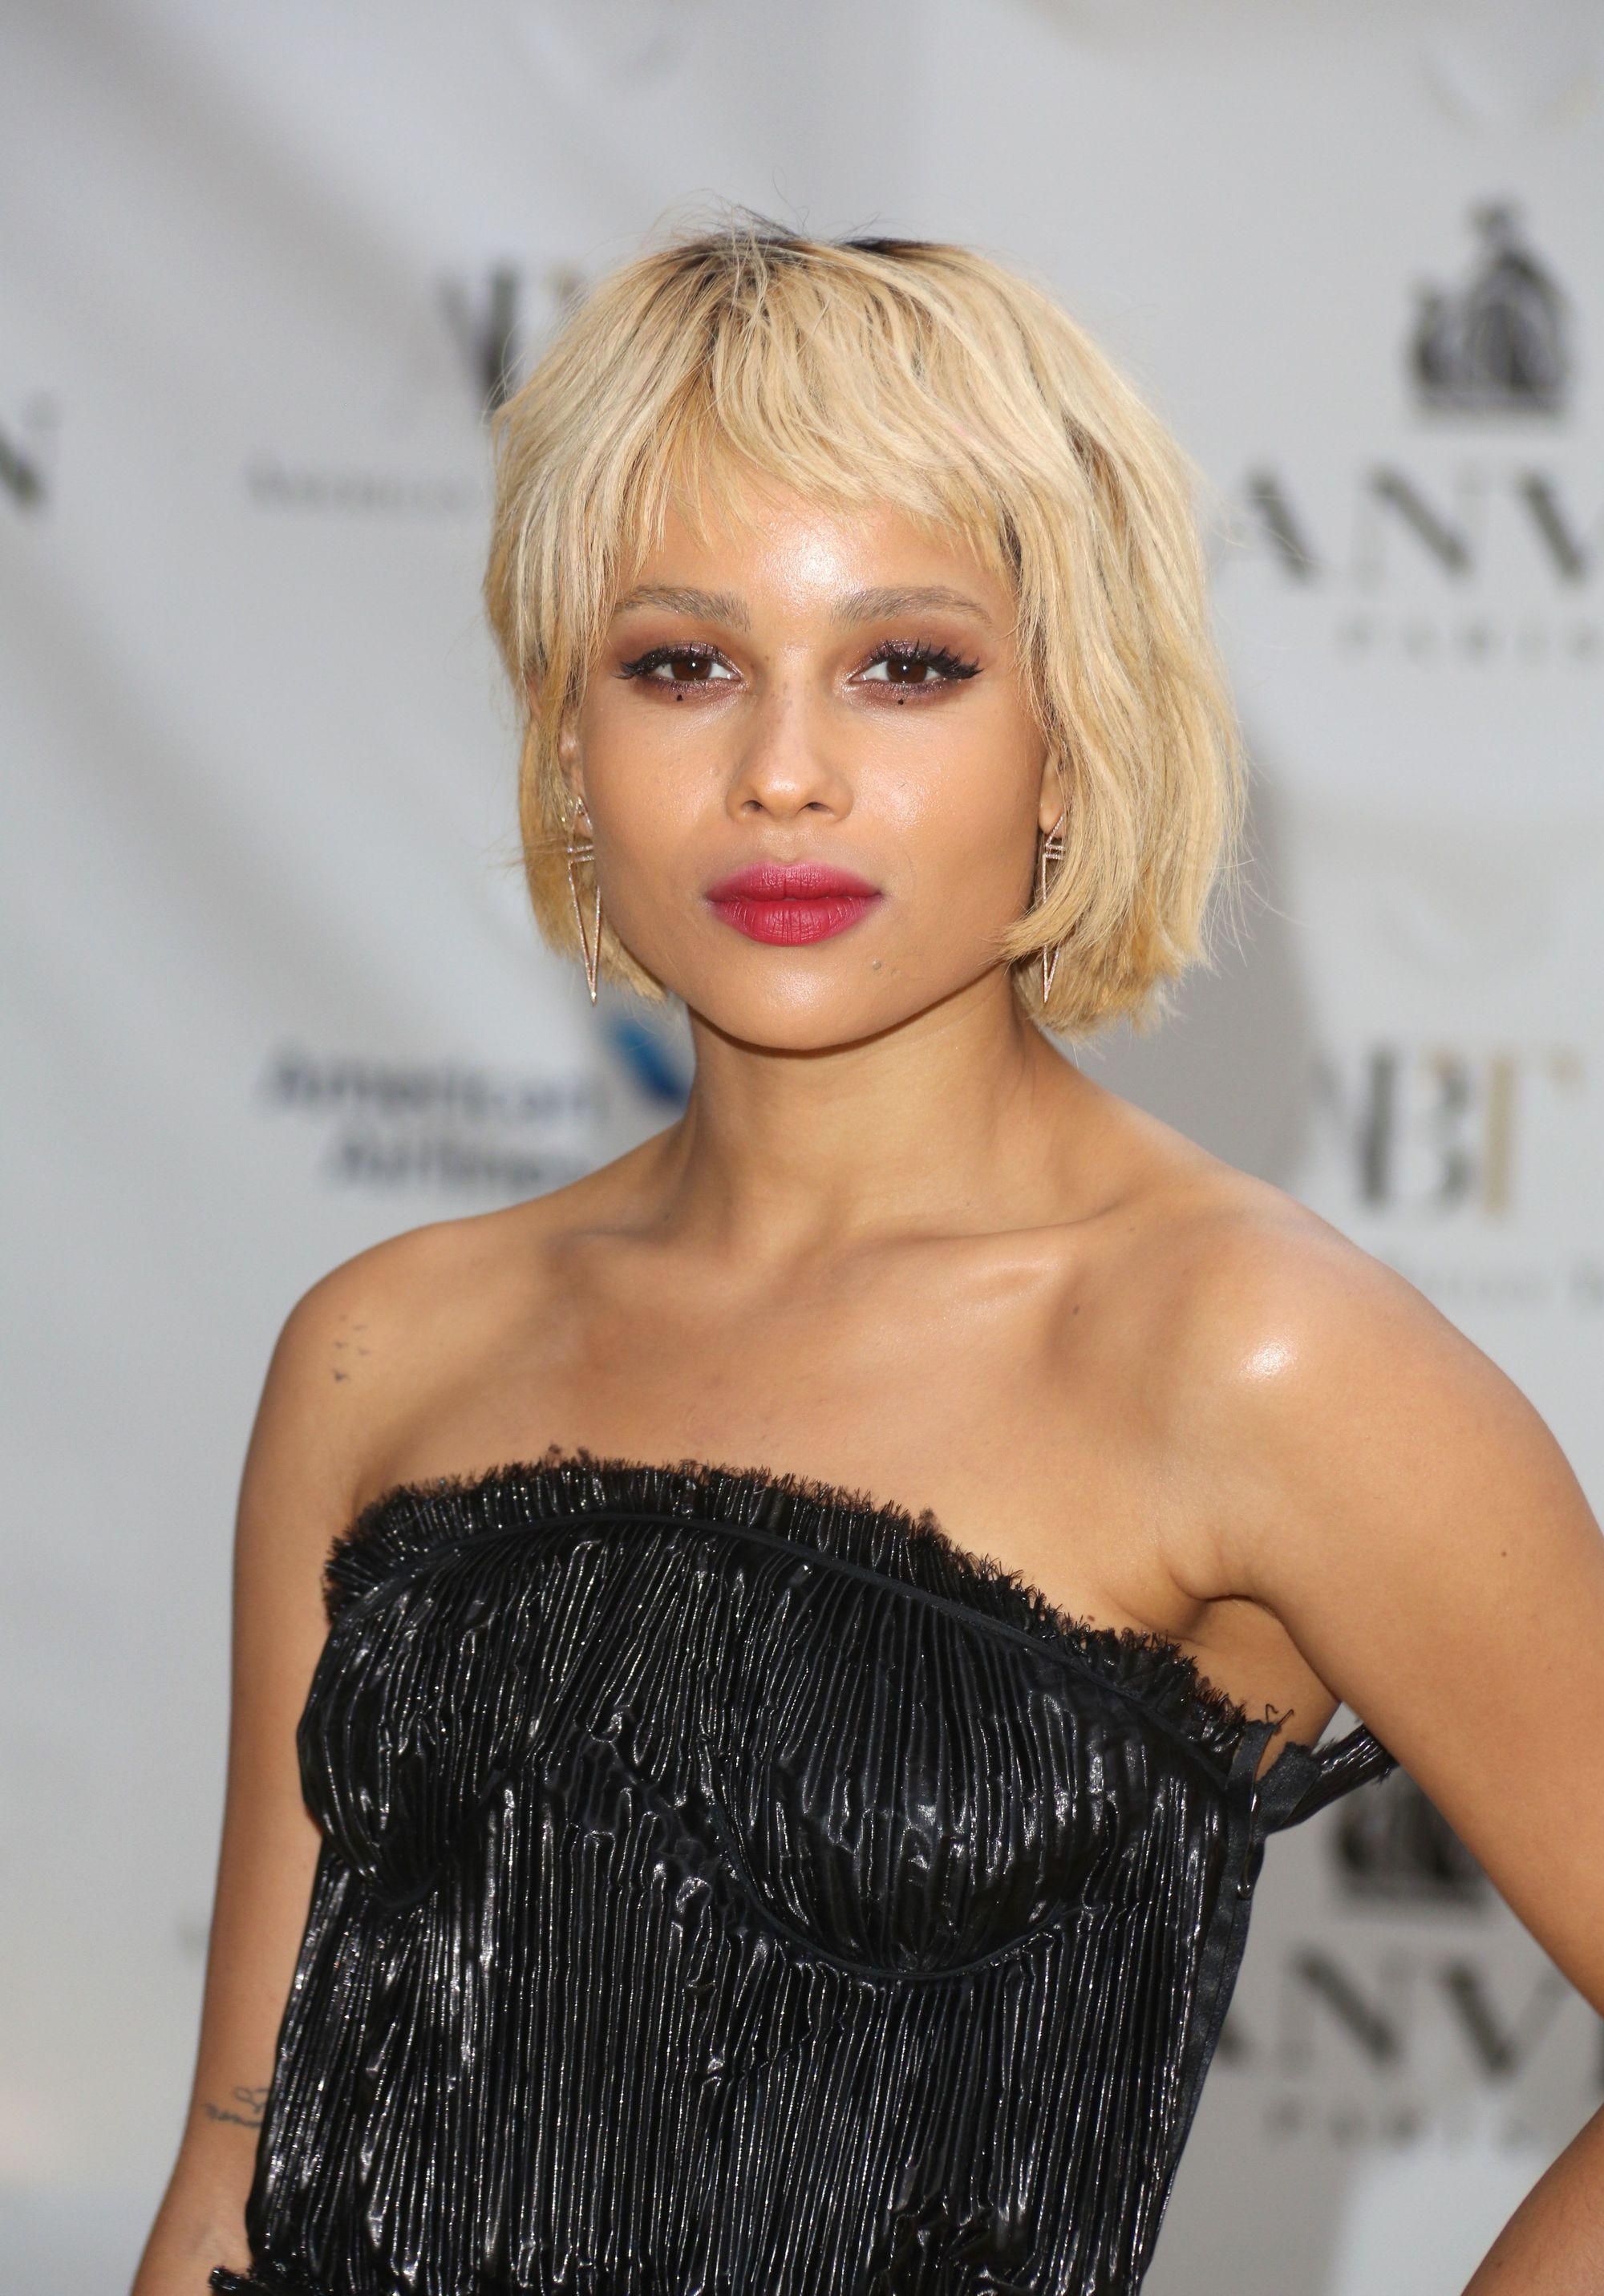 Zoë Kravitz with golden blonde short hair with a wispy micro fringe, wearing all black and posing on the red carpet